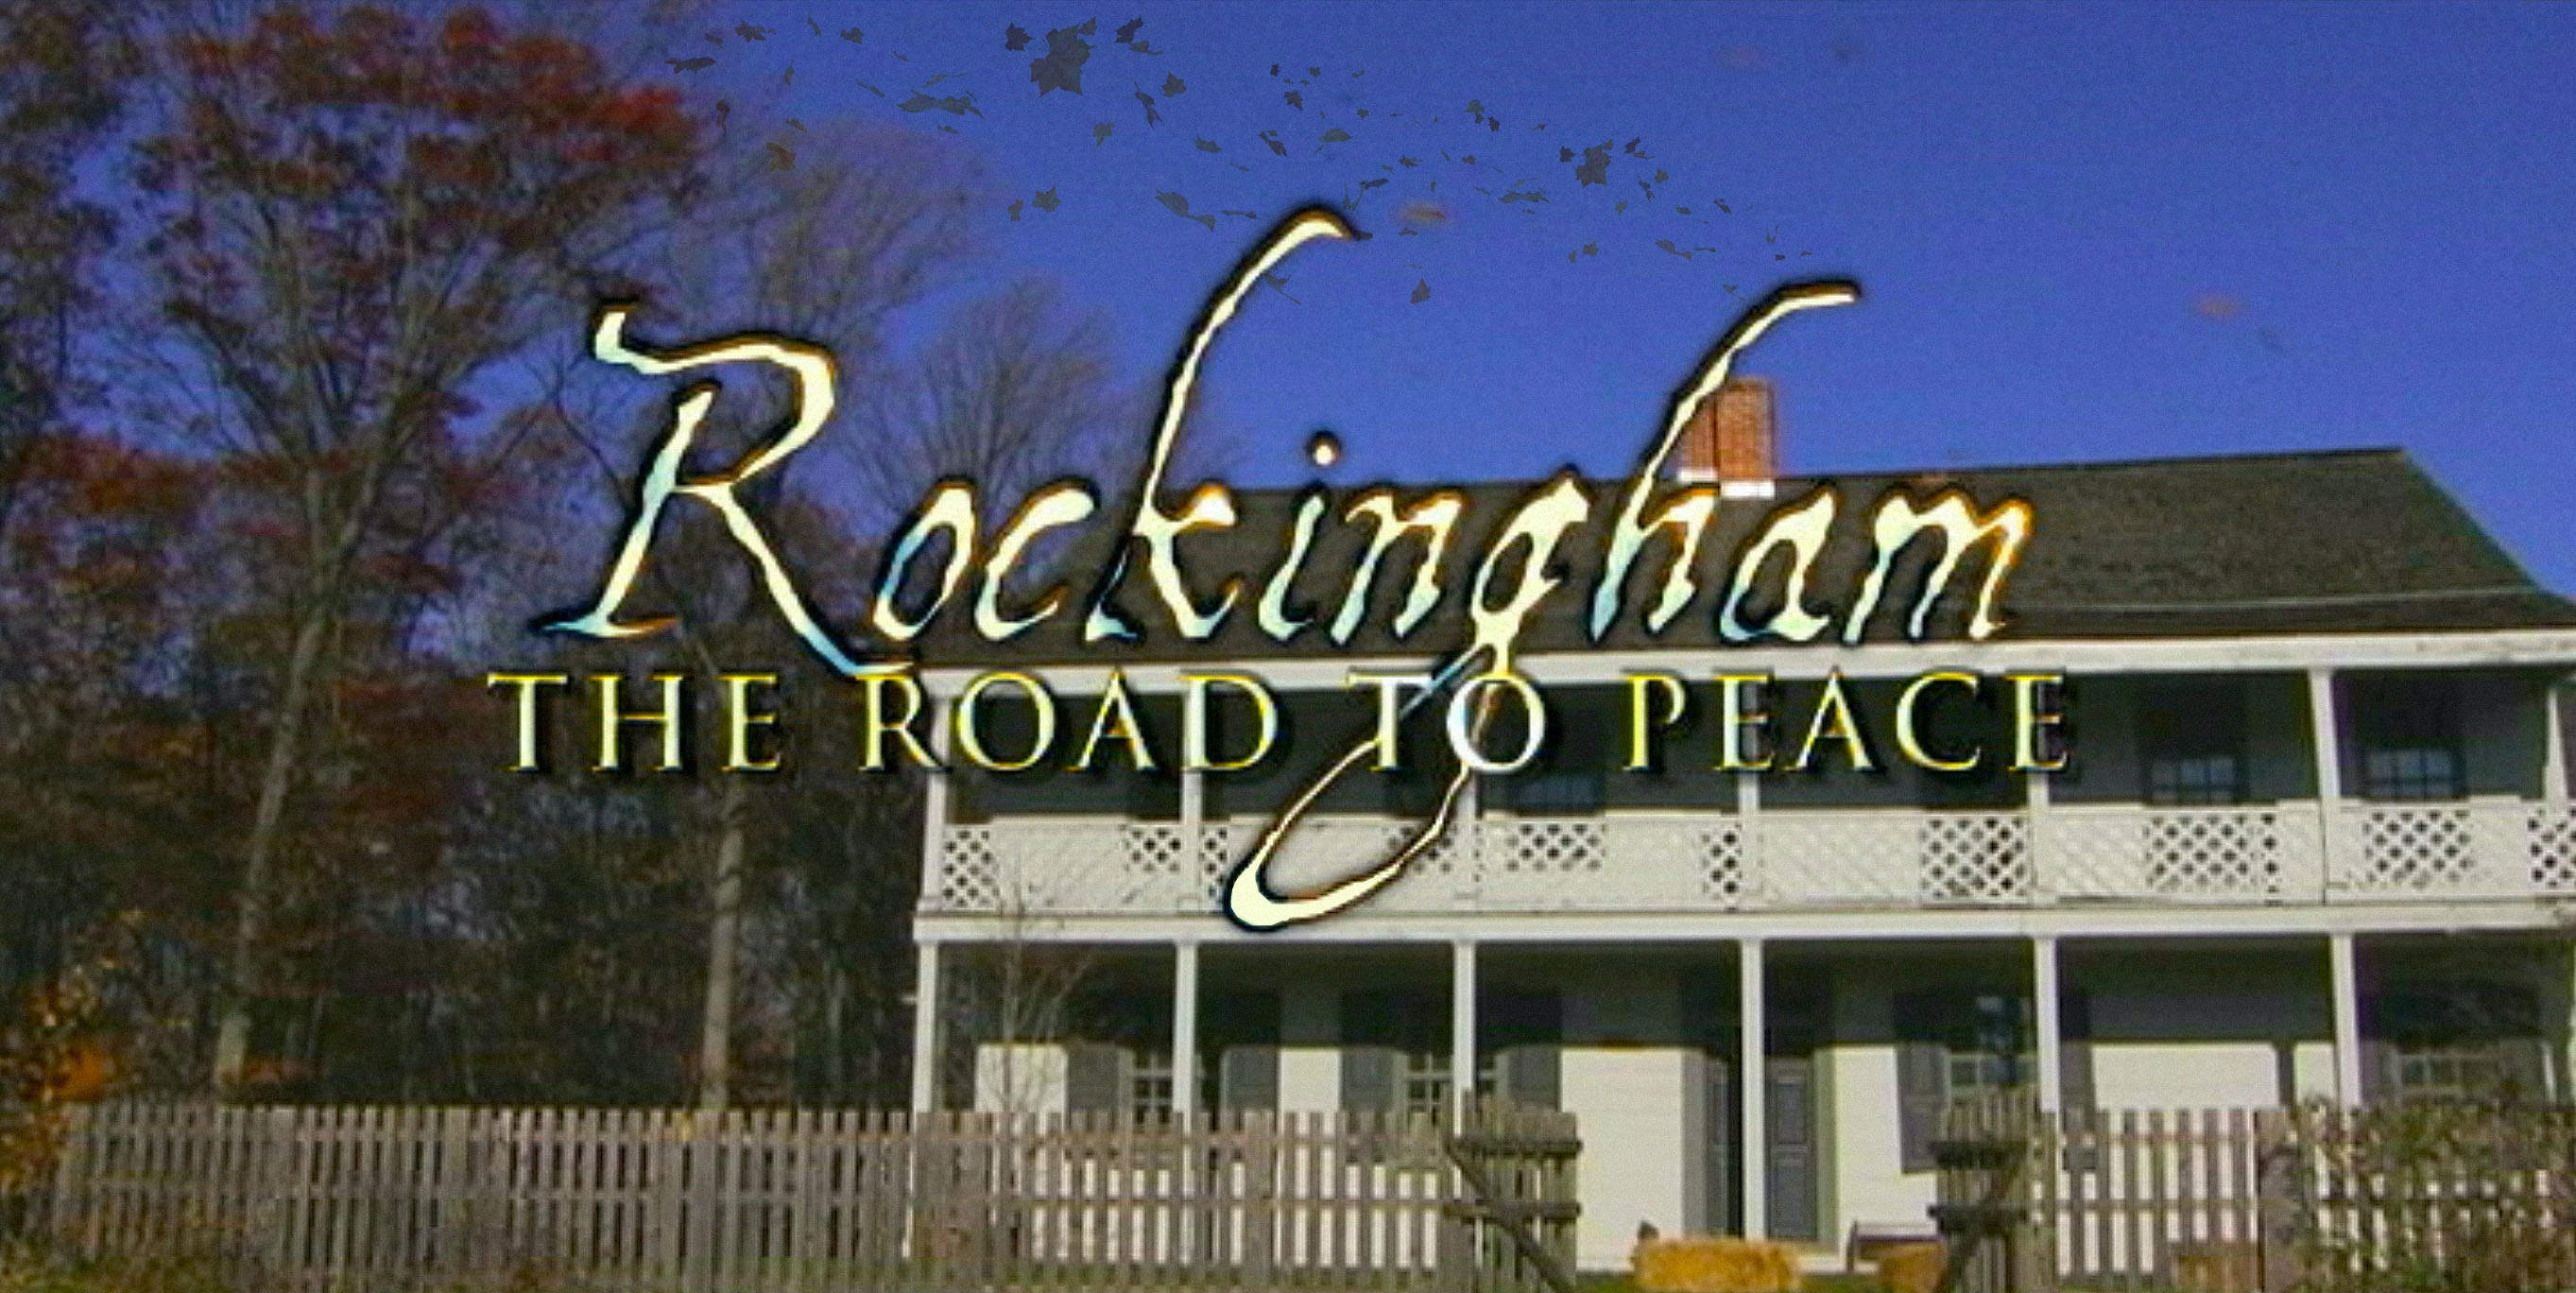 ROCKINGHAM: THE ROAD TO PEACE